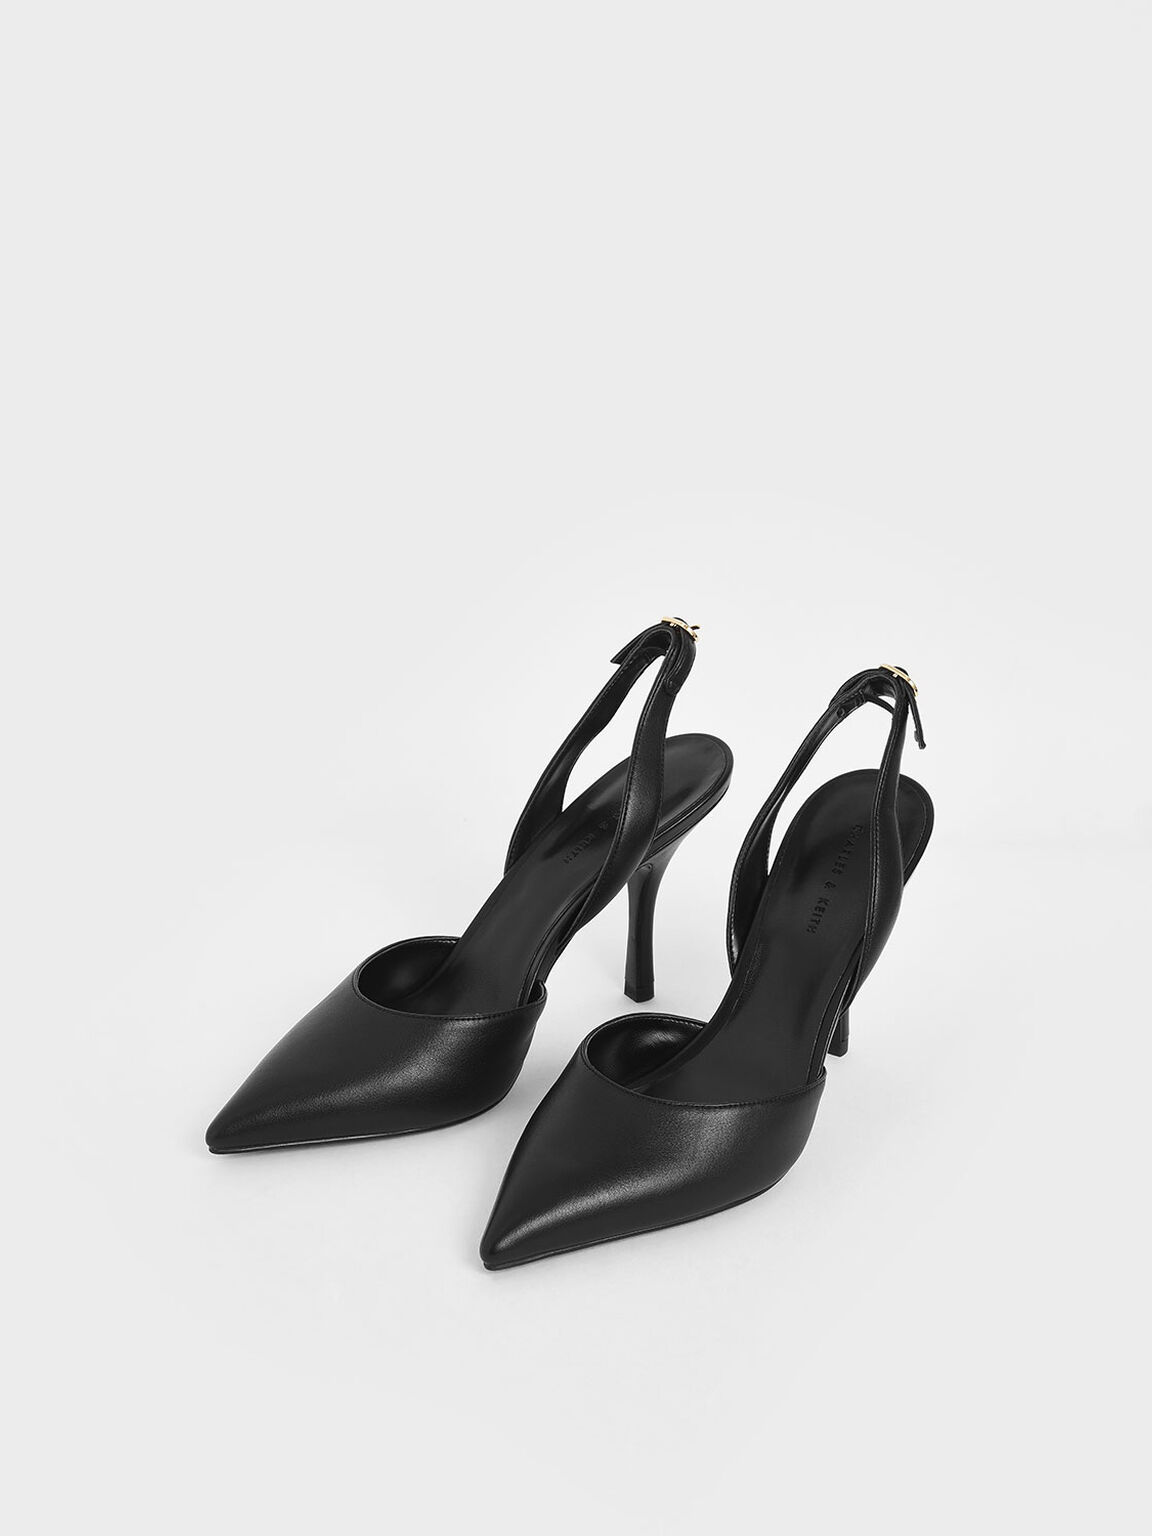 D'Orsay Slingback Pumps, Black, hi-res